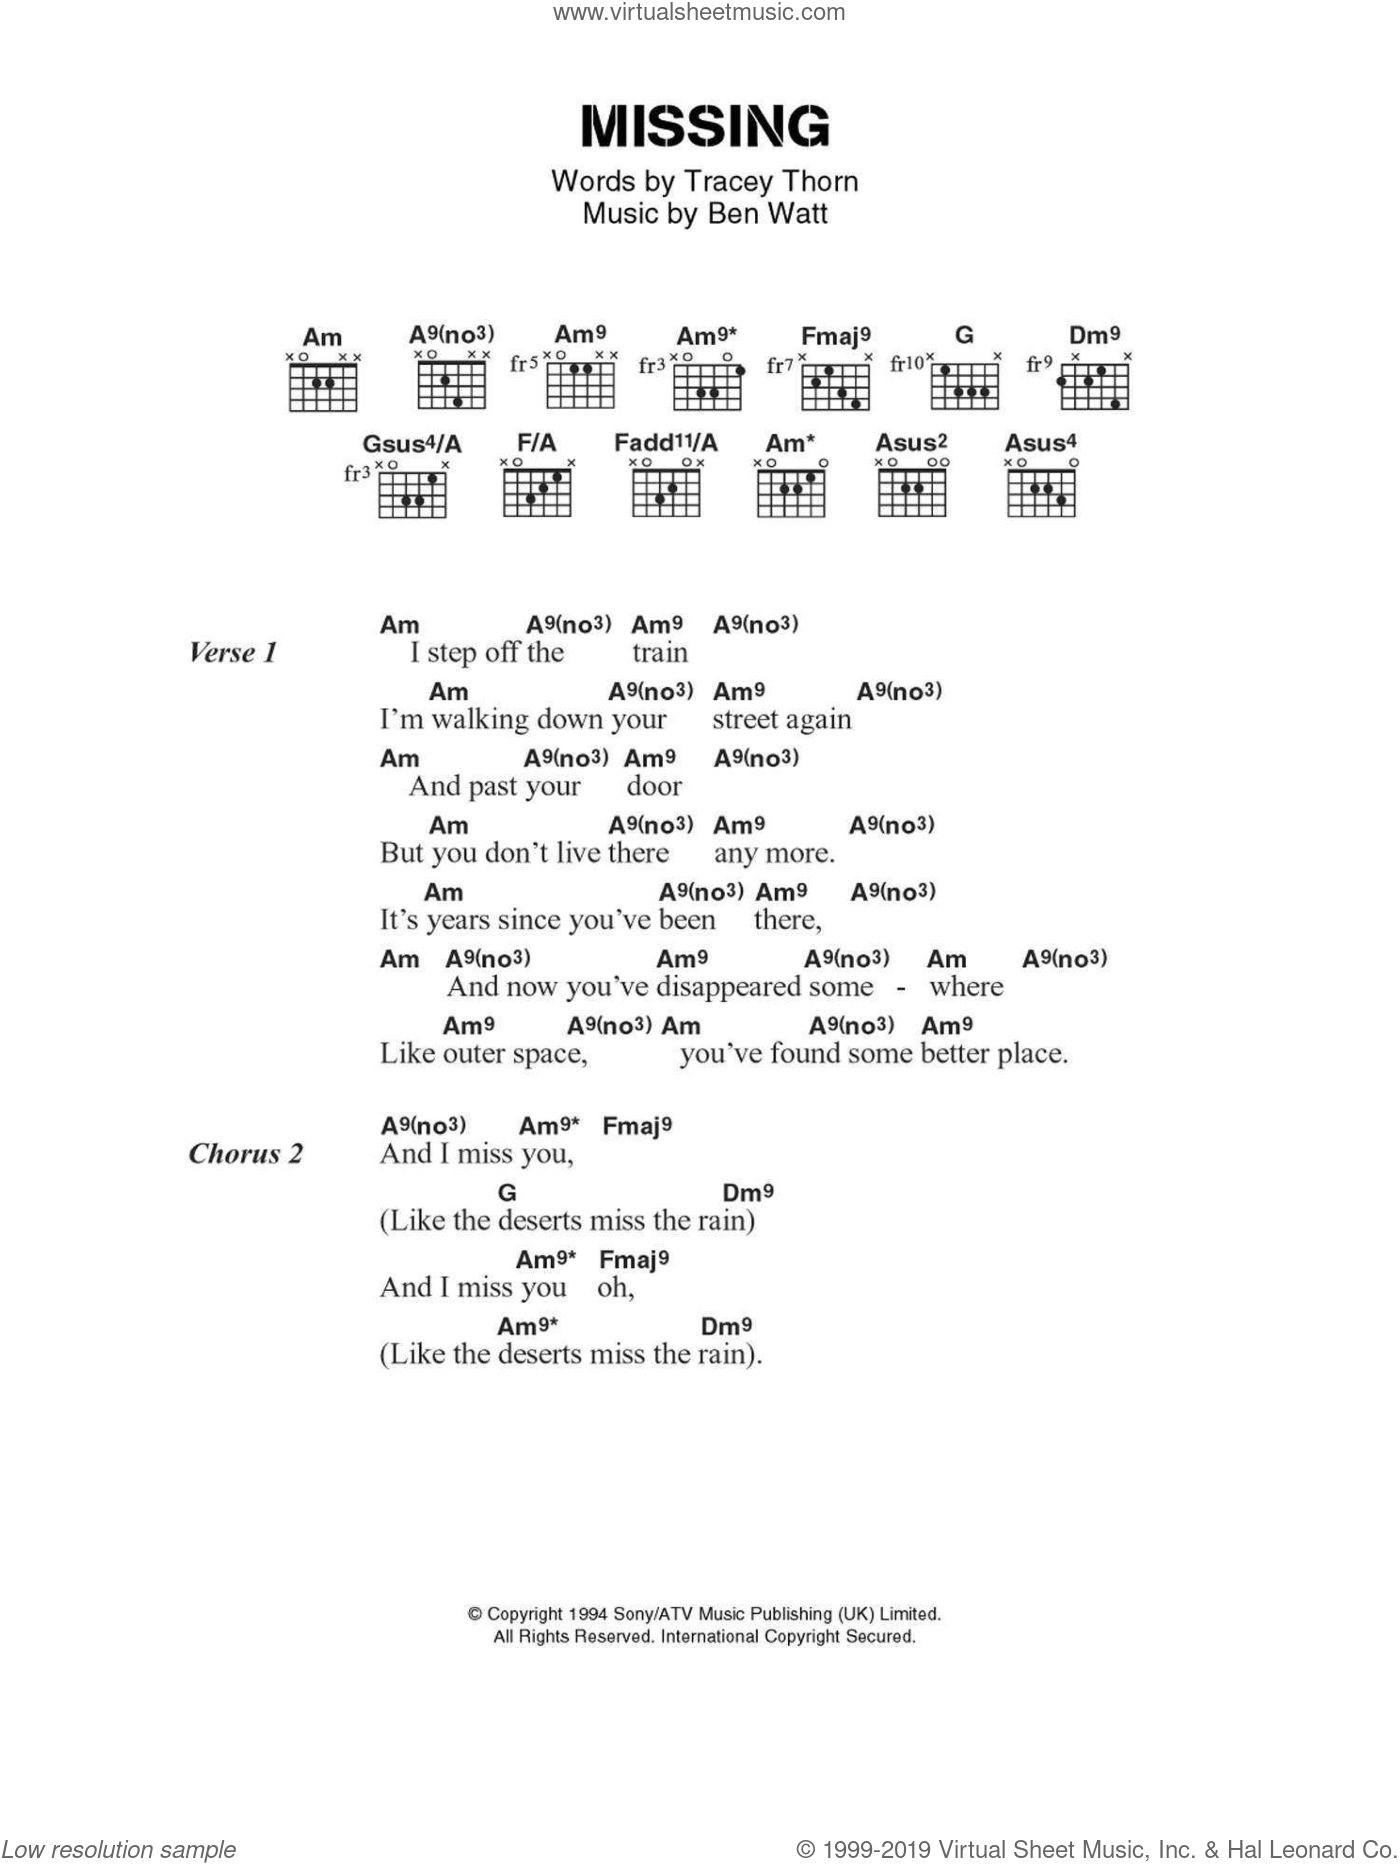 Girl - Missing sheet music for guitar (chords) [PDF]